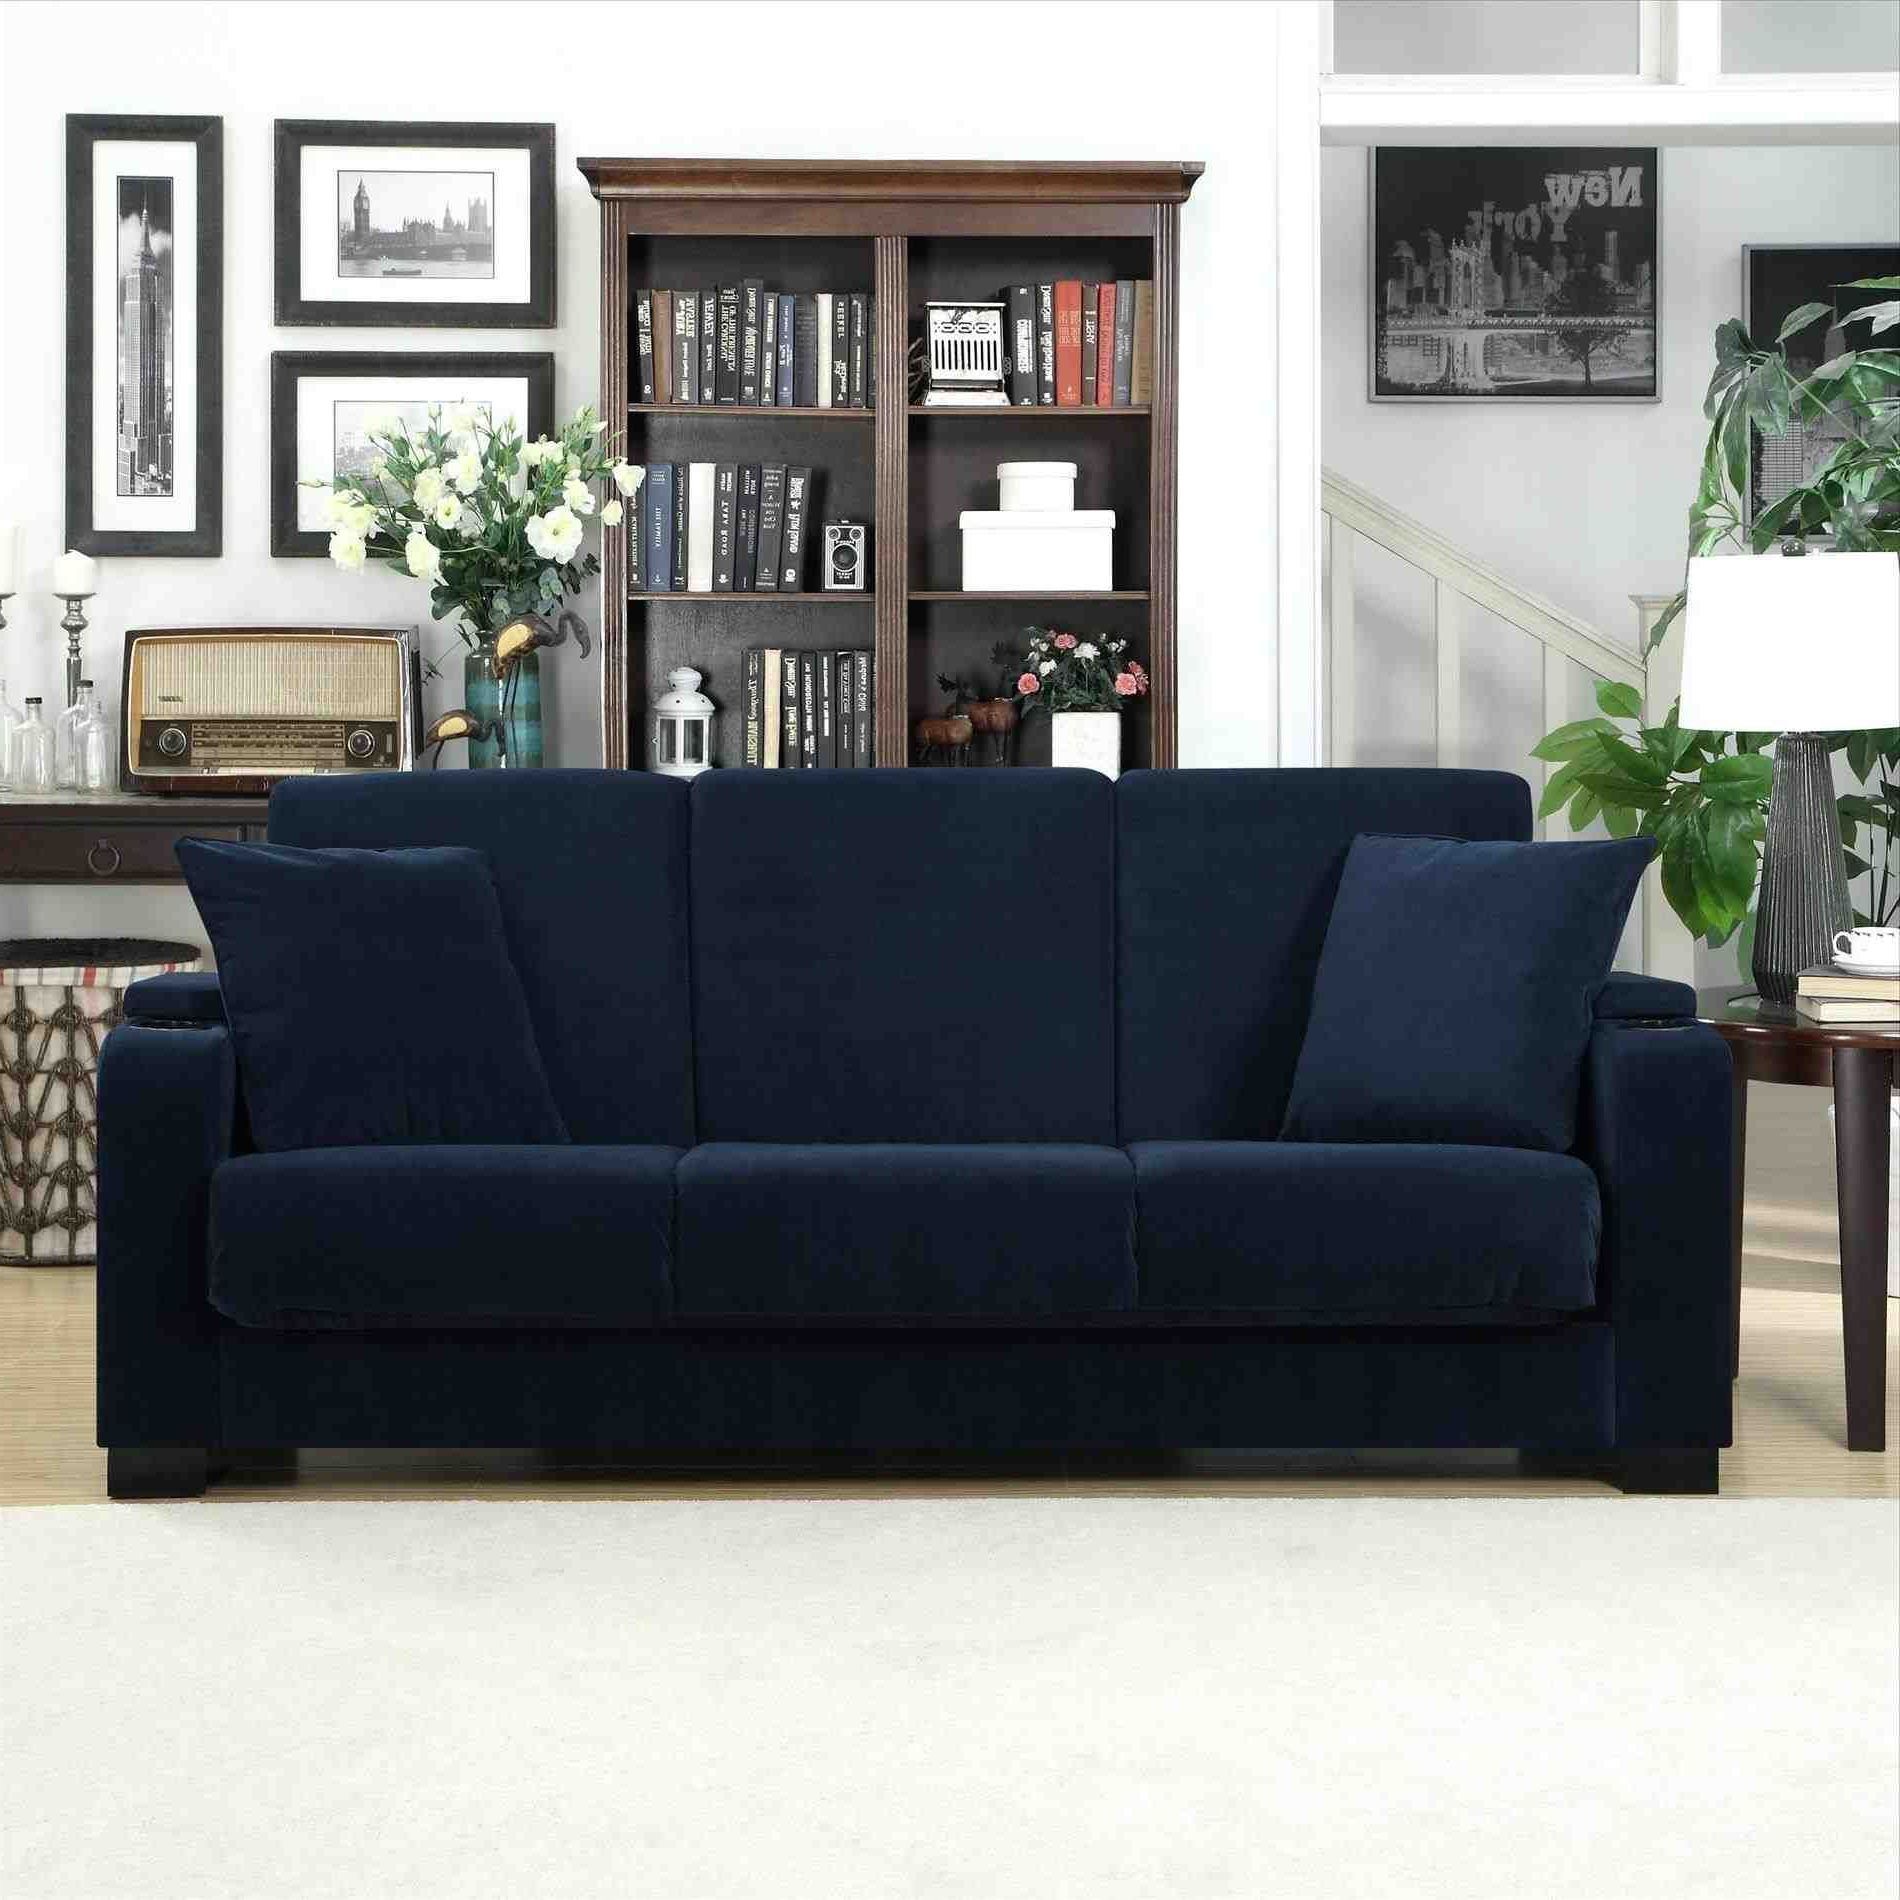 Cheap Sofa Deals Uk – Living Room Chairs Cheap Furniture Prices In Throughout Best And Newest Cheap Sofa Chairs (Gallery 8 of 20)